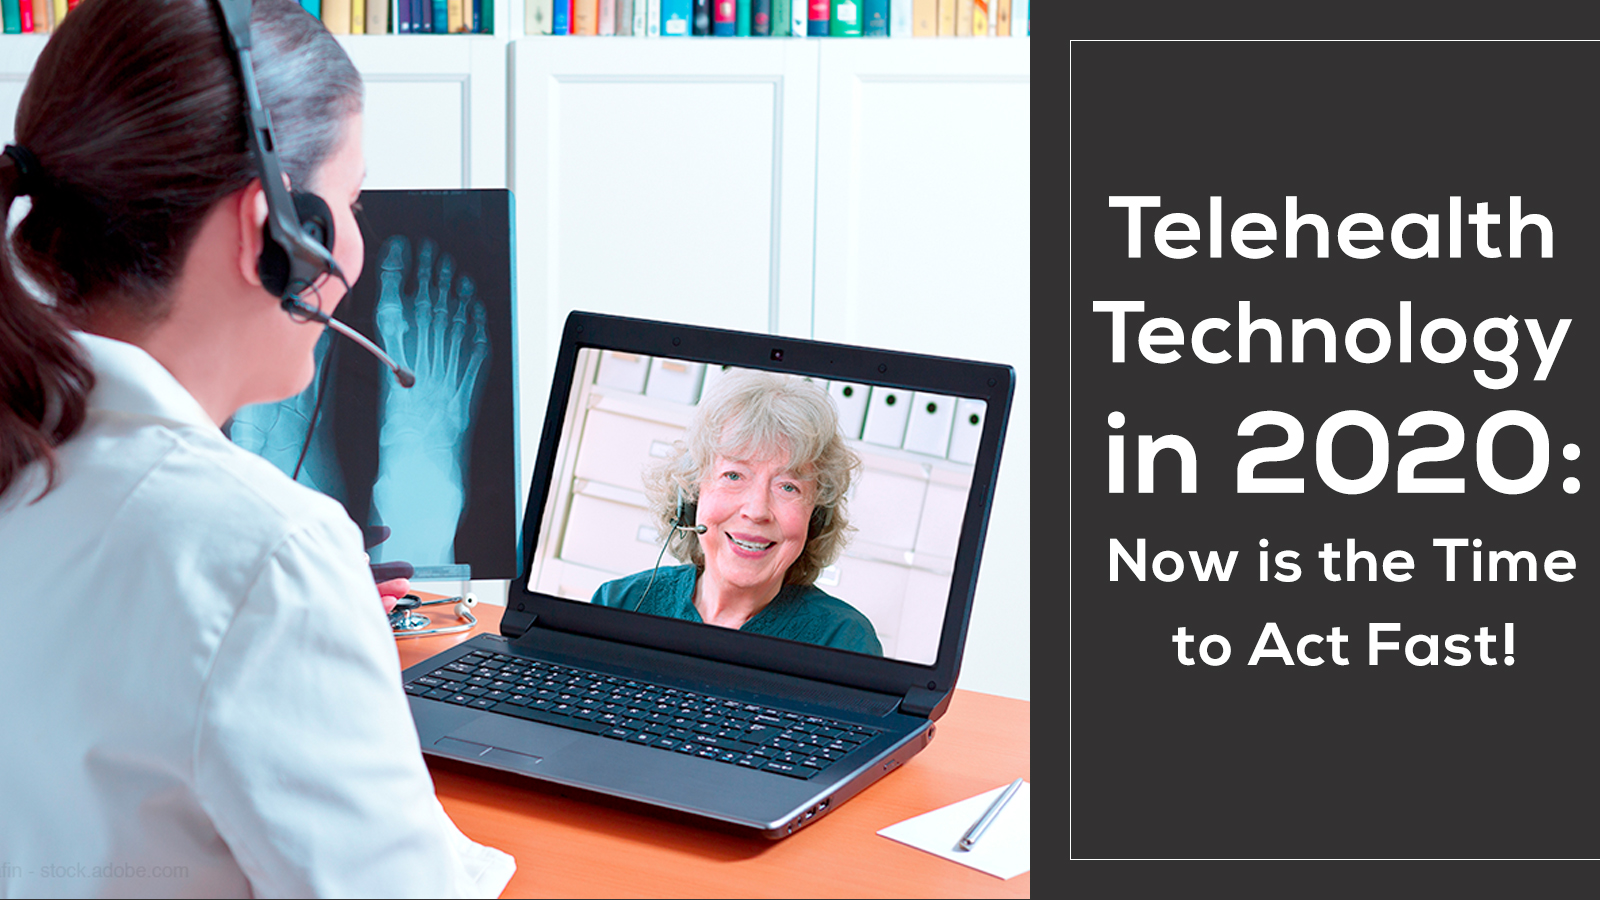 iPatientCare Blog - Telehealth Technology in 2020 Now is the Time to Act Fast